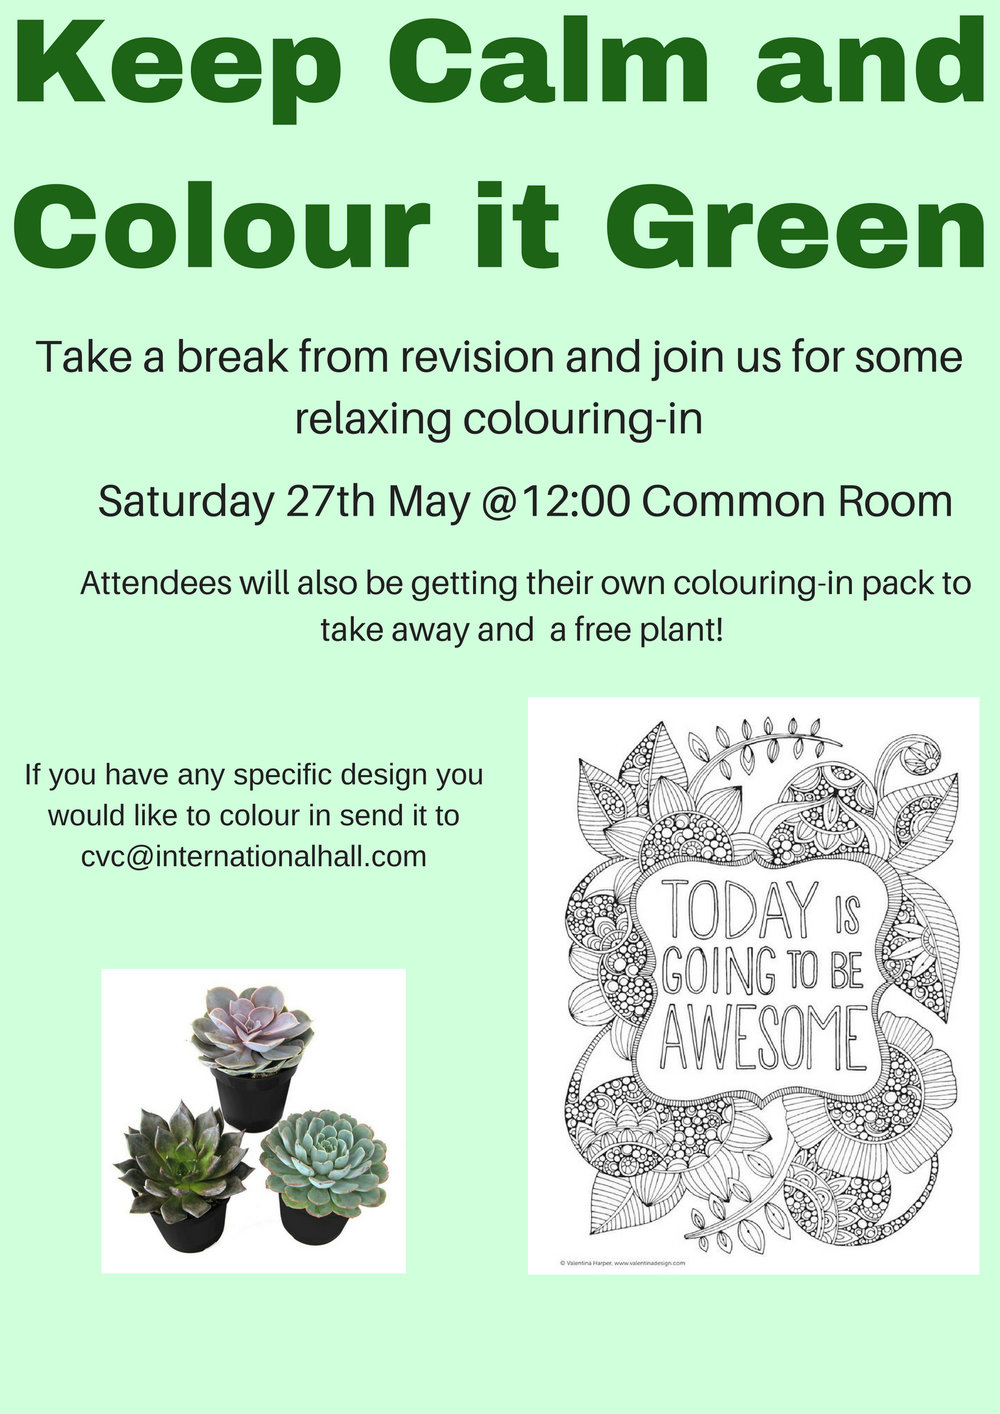 Keep Calm and Colour it Green (3).jpg